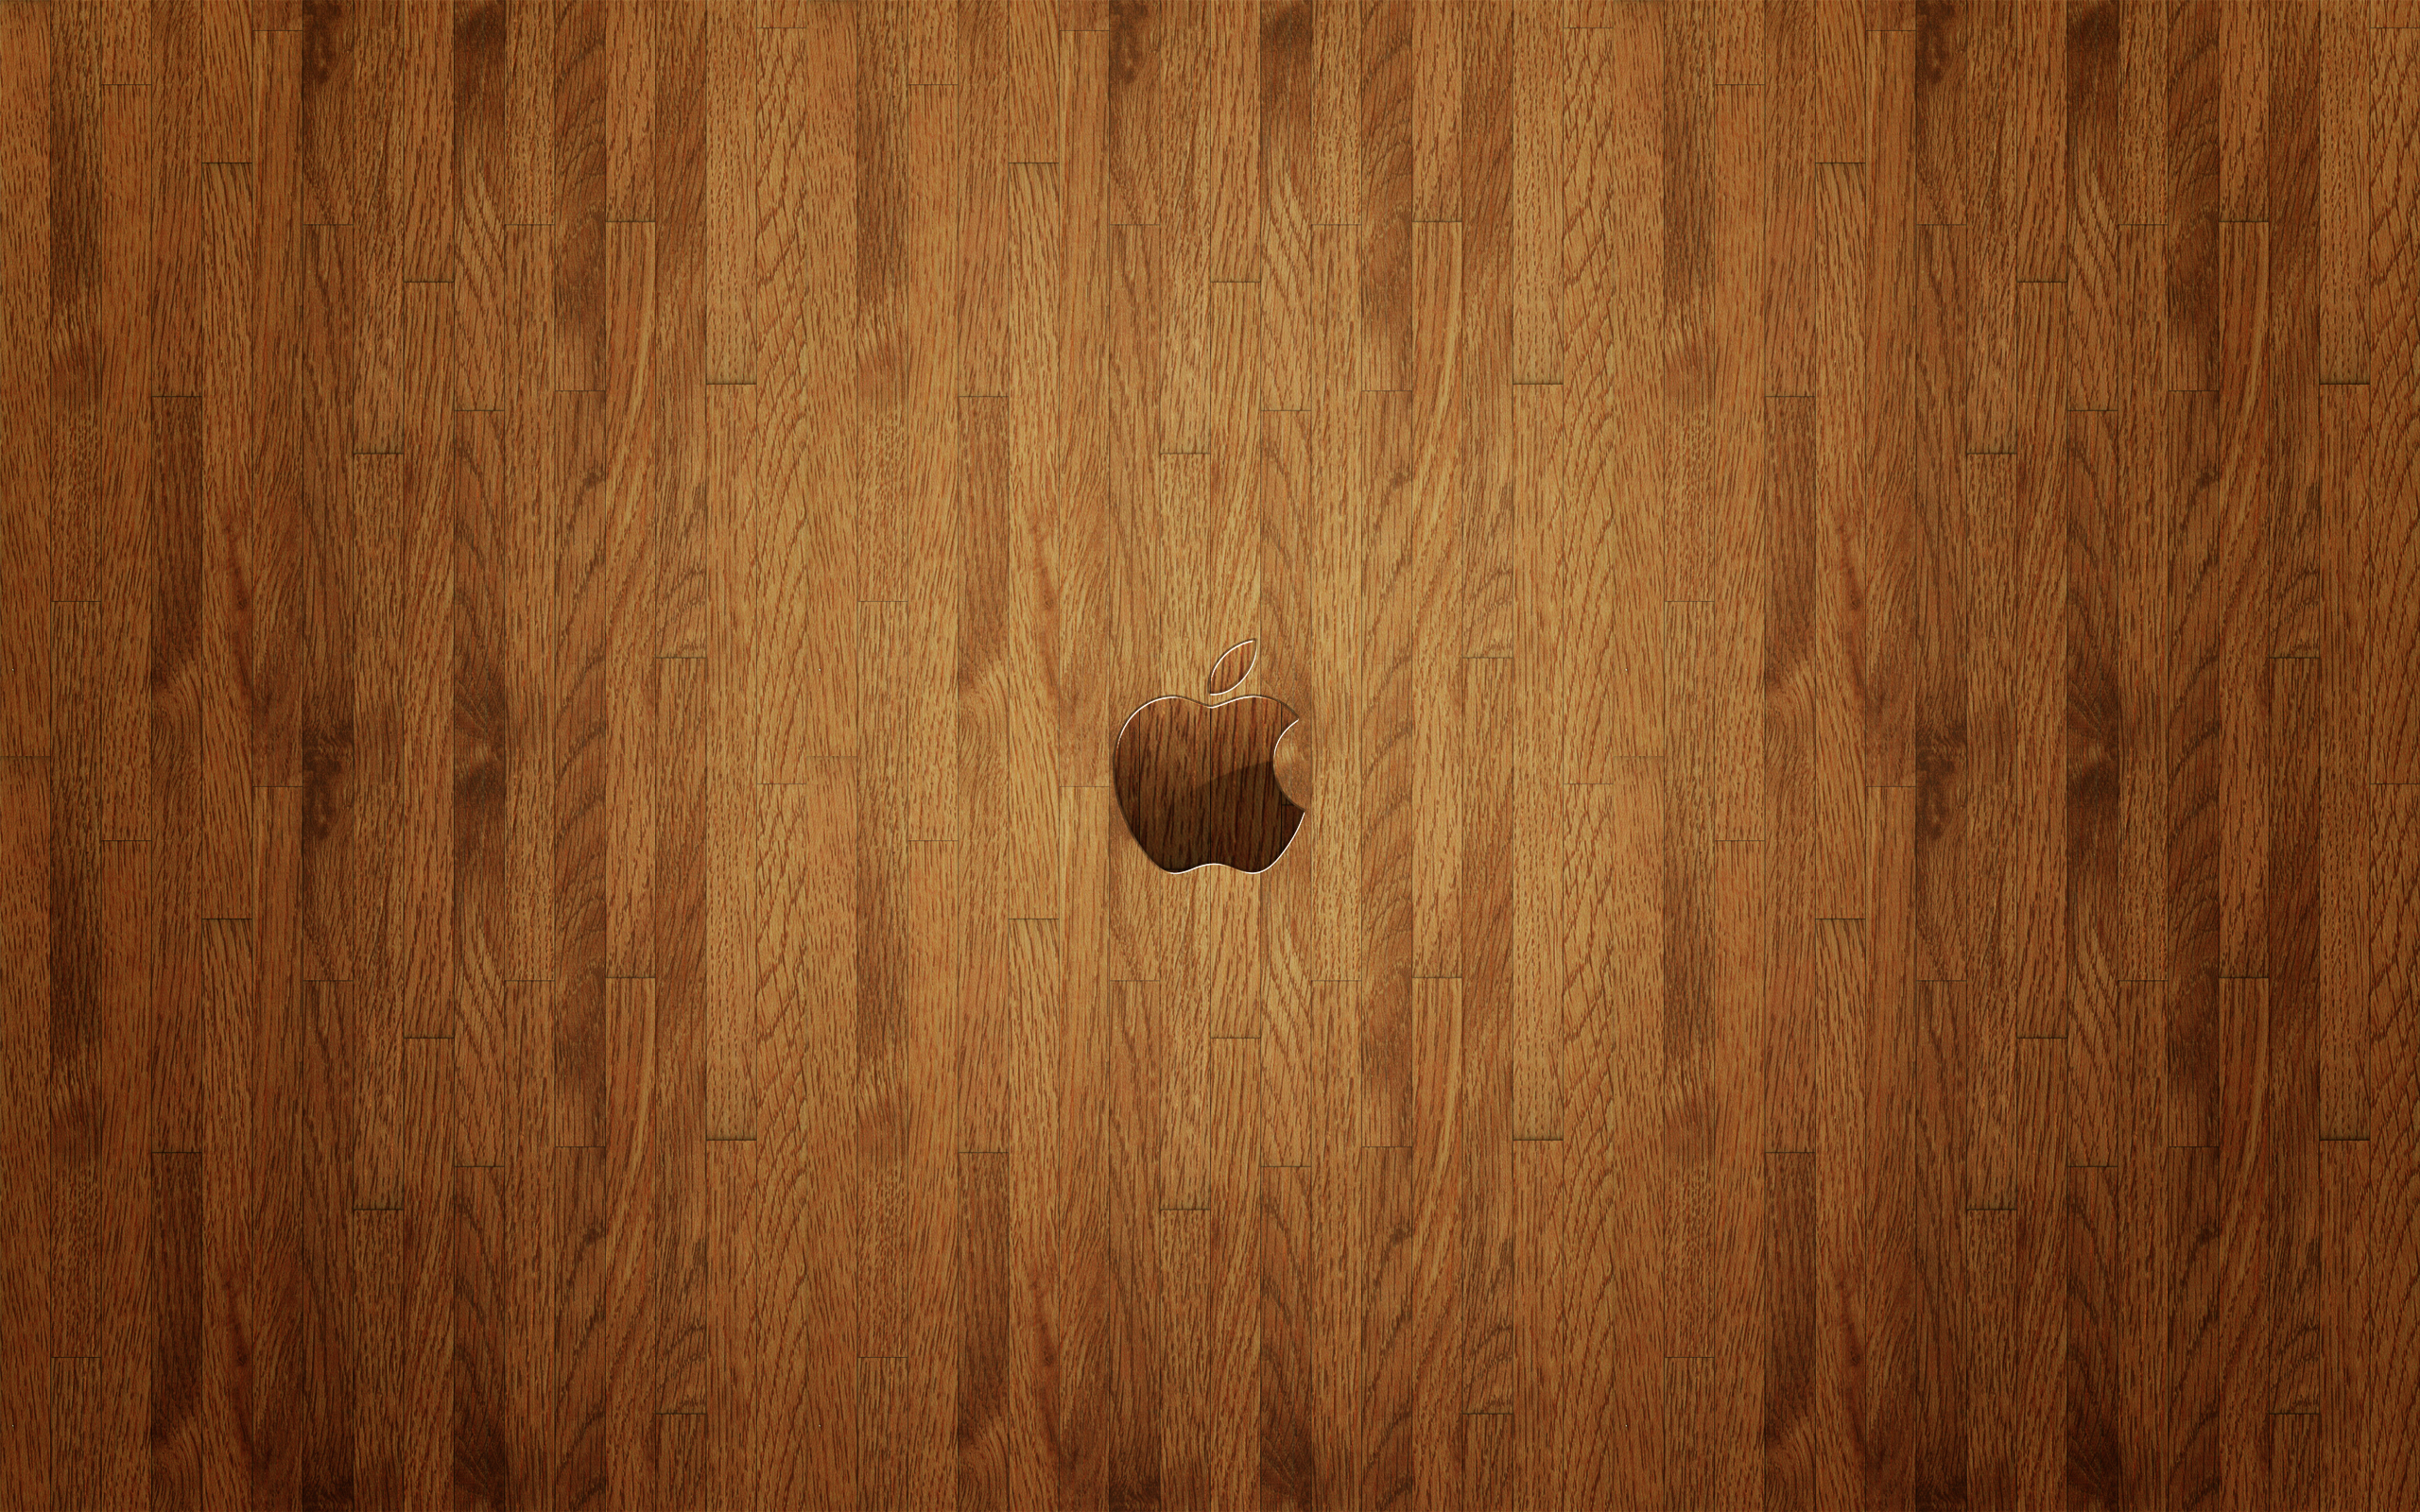 Wall With Wood Mac Wallpaper Set 5 Mac Wood Megapack 2 Awesome Wallpapers